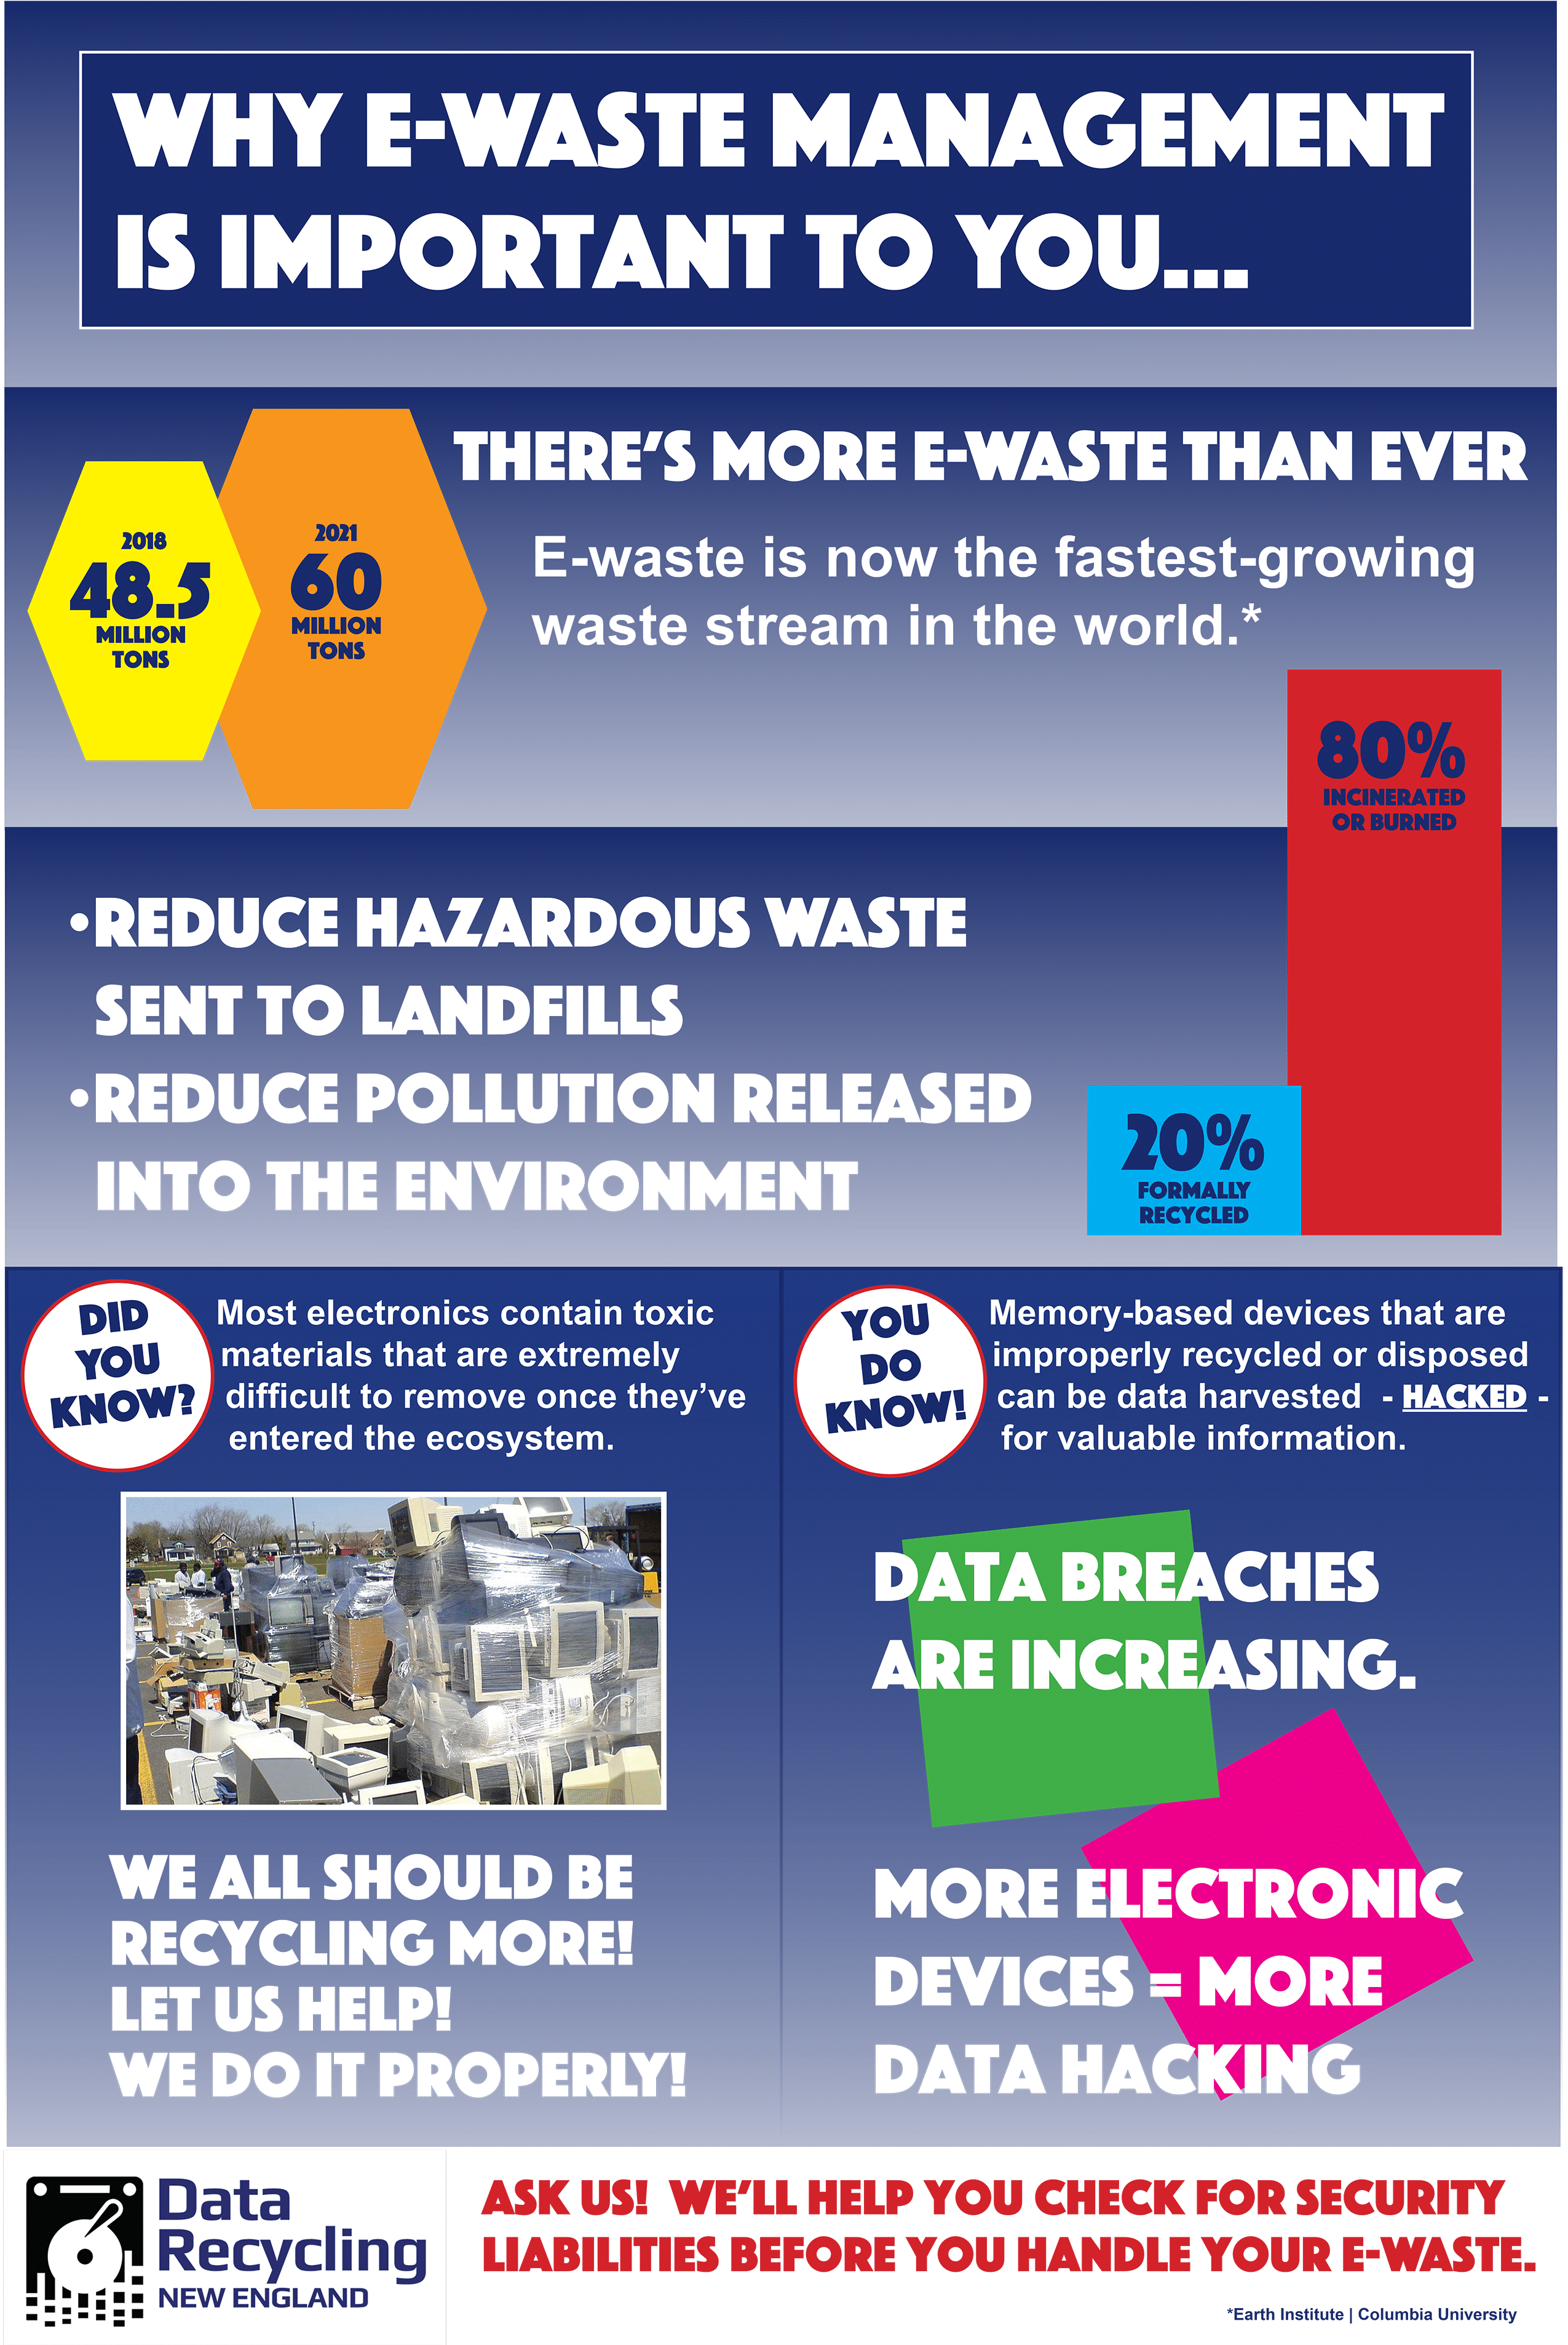 Why EWaste Management Is Important To You Data Recycling New England